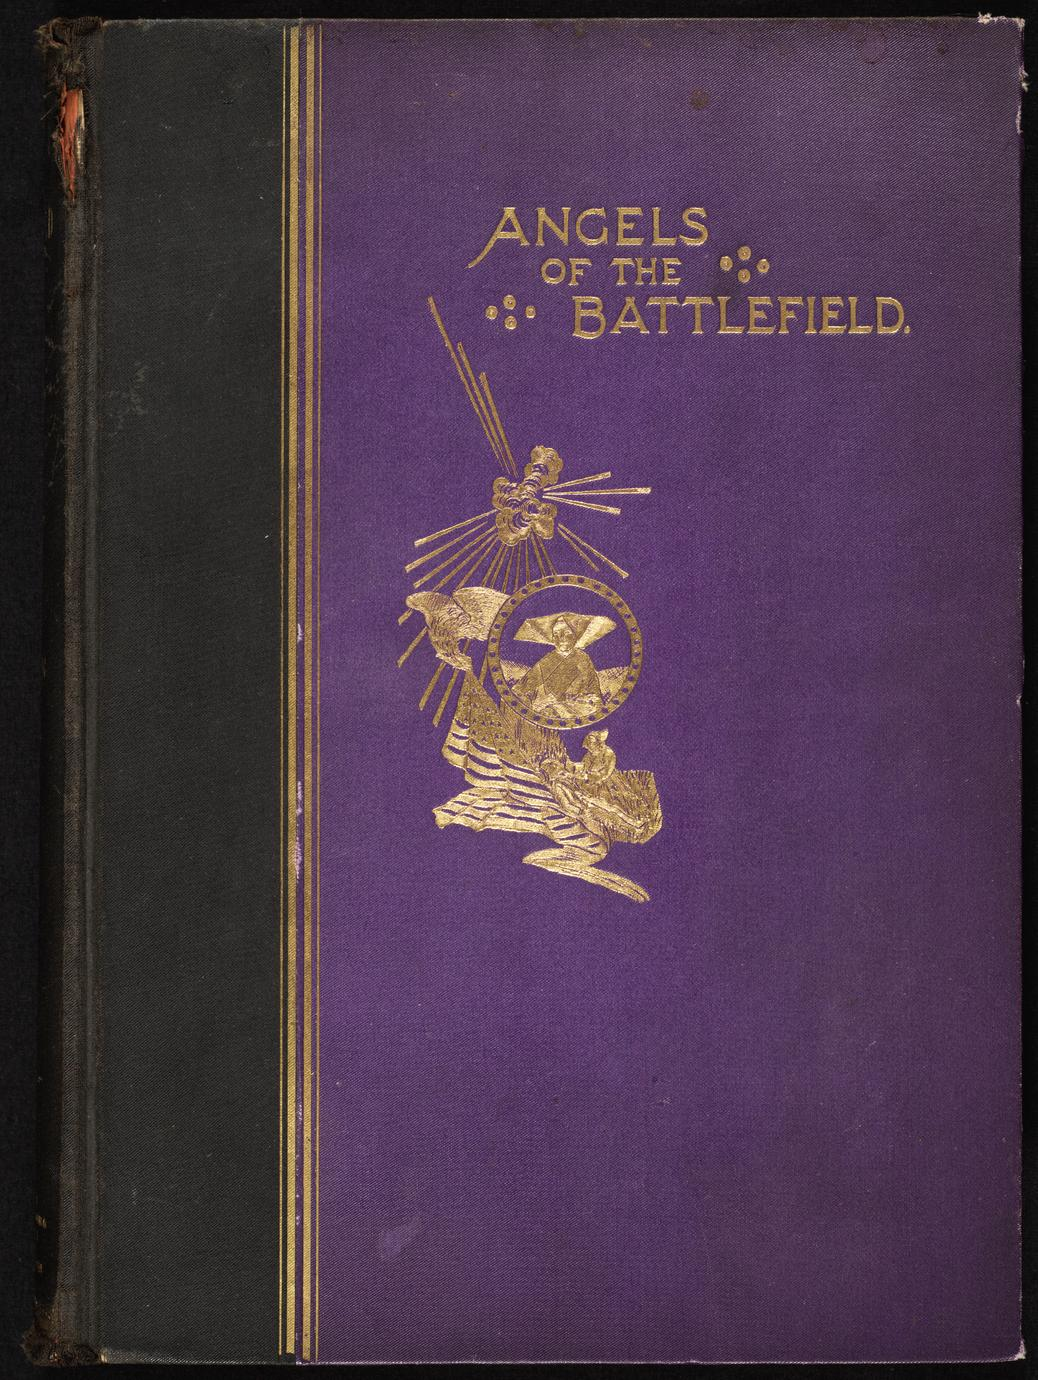 Angels of the battlefield : a history of the labors of the Catholic sisterhoods in the late Civil War (1 of 2)